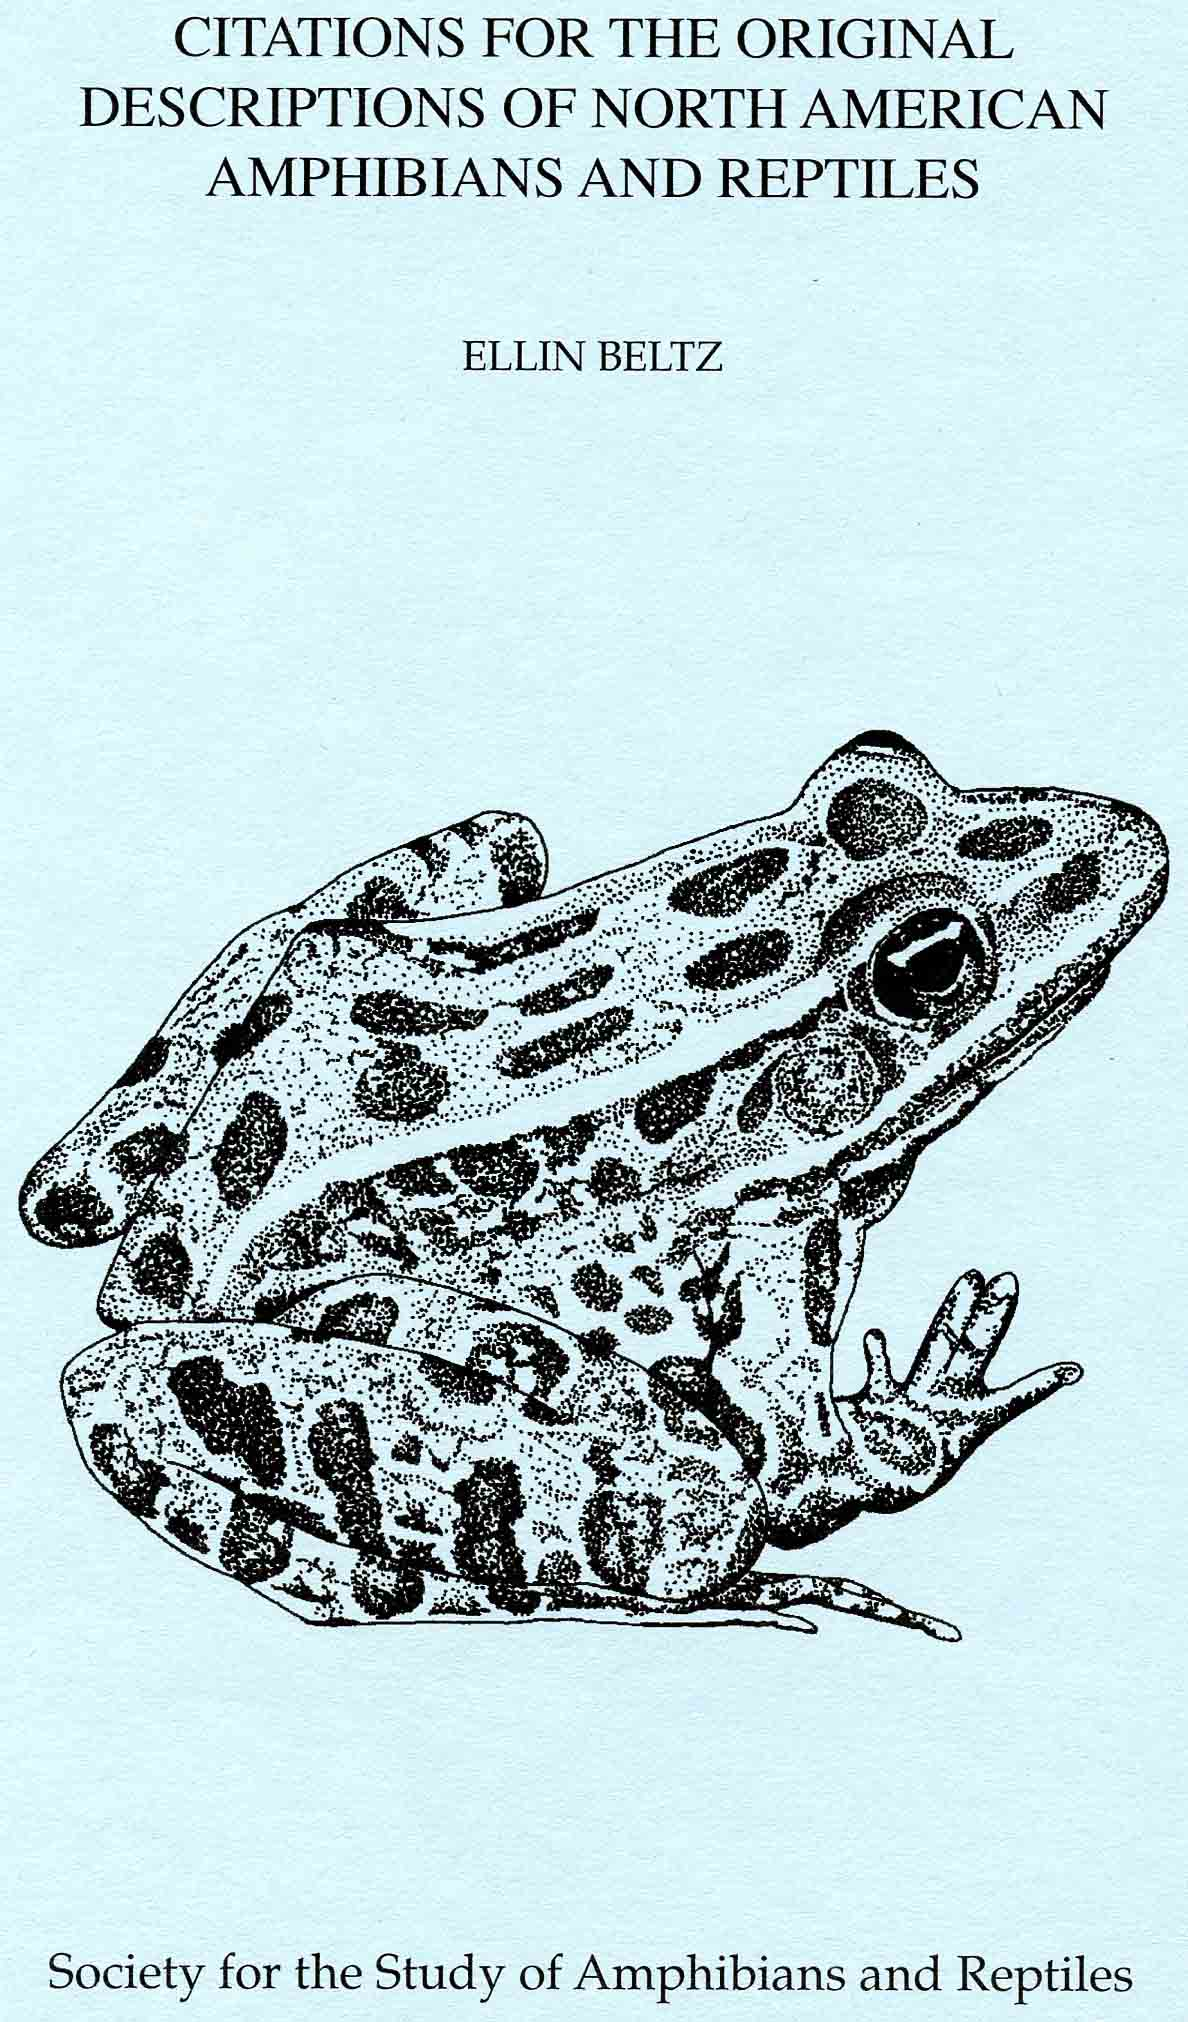 Image for Citations for the Original Descriptions of North American Amphibians and Reptiles